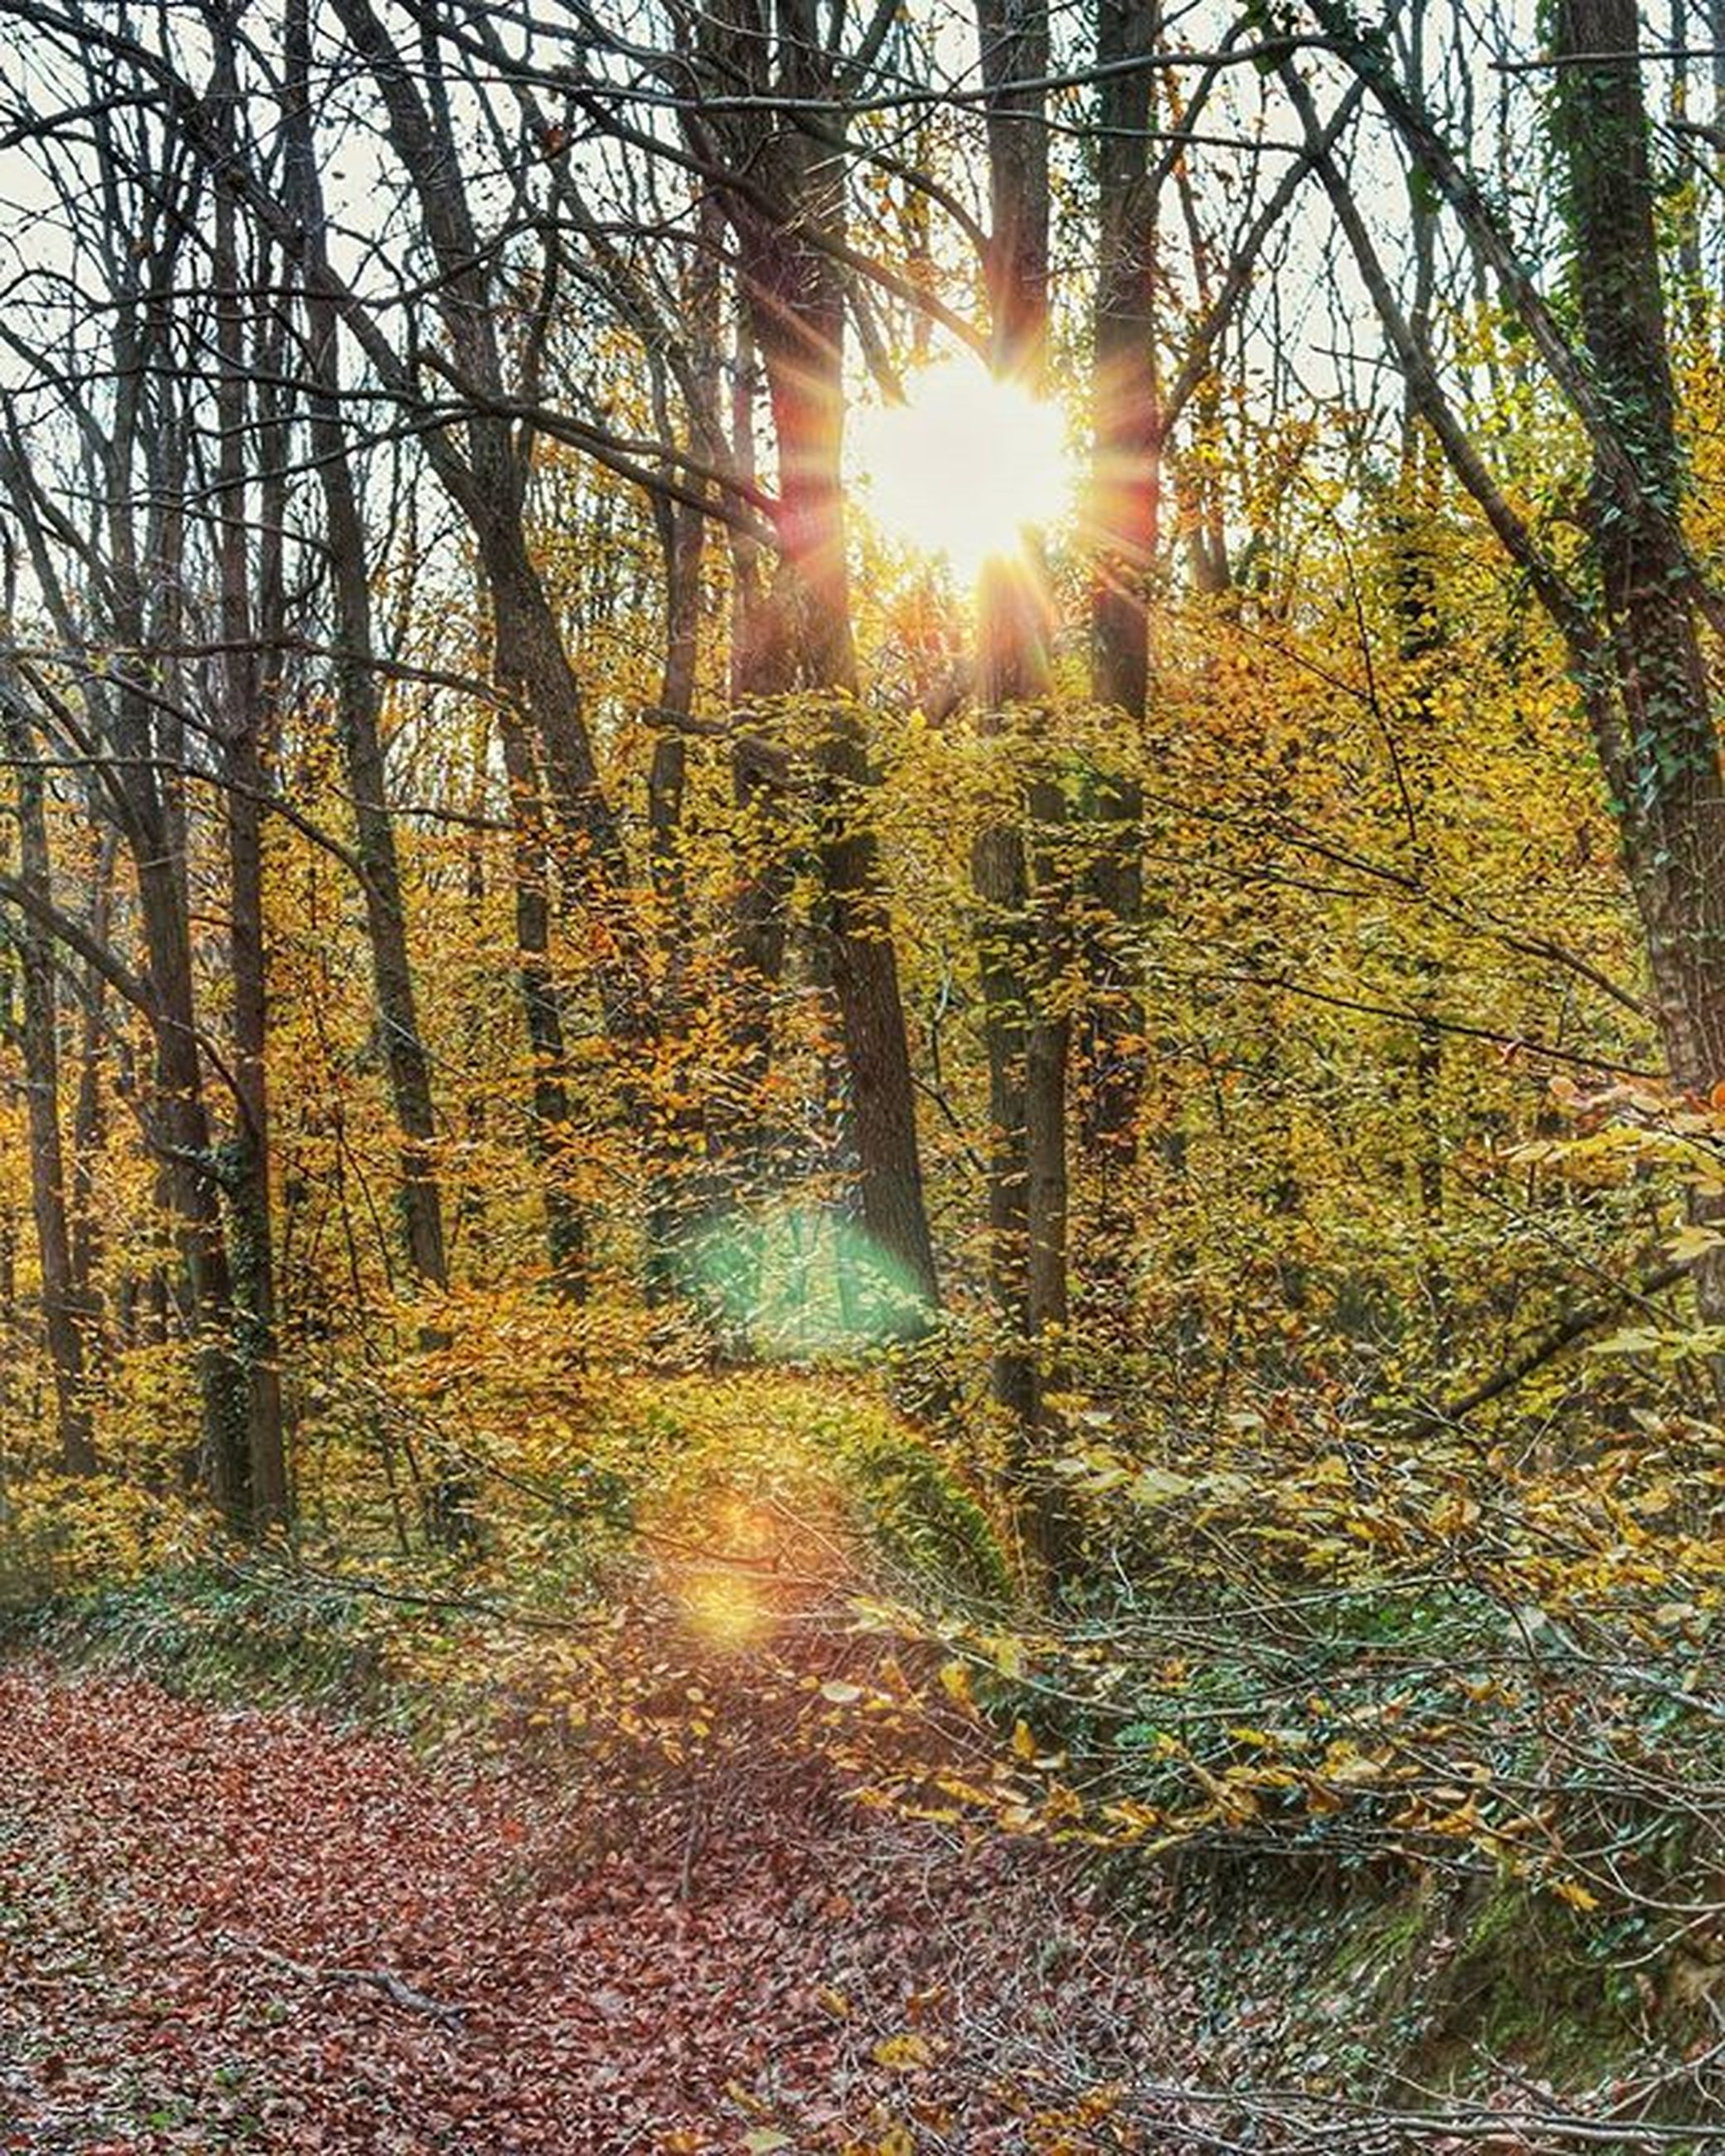 tree, sun, sunbeam, sunlight, tranquility, lens flare, tranquil scene, forest, nature, scenics, beauty in nature, sunset, branch, growth, tree trunk, back lit, bare tree, woodland, landscape, non-urban scene